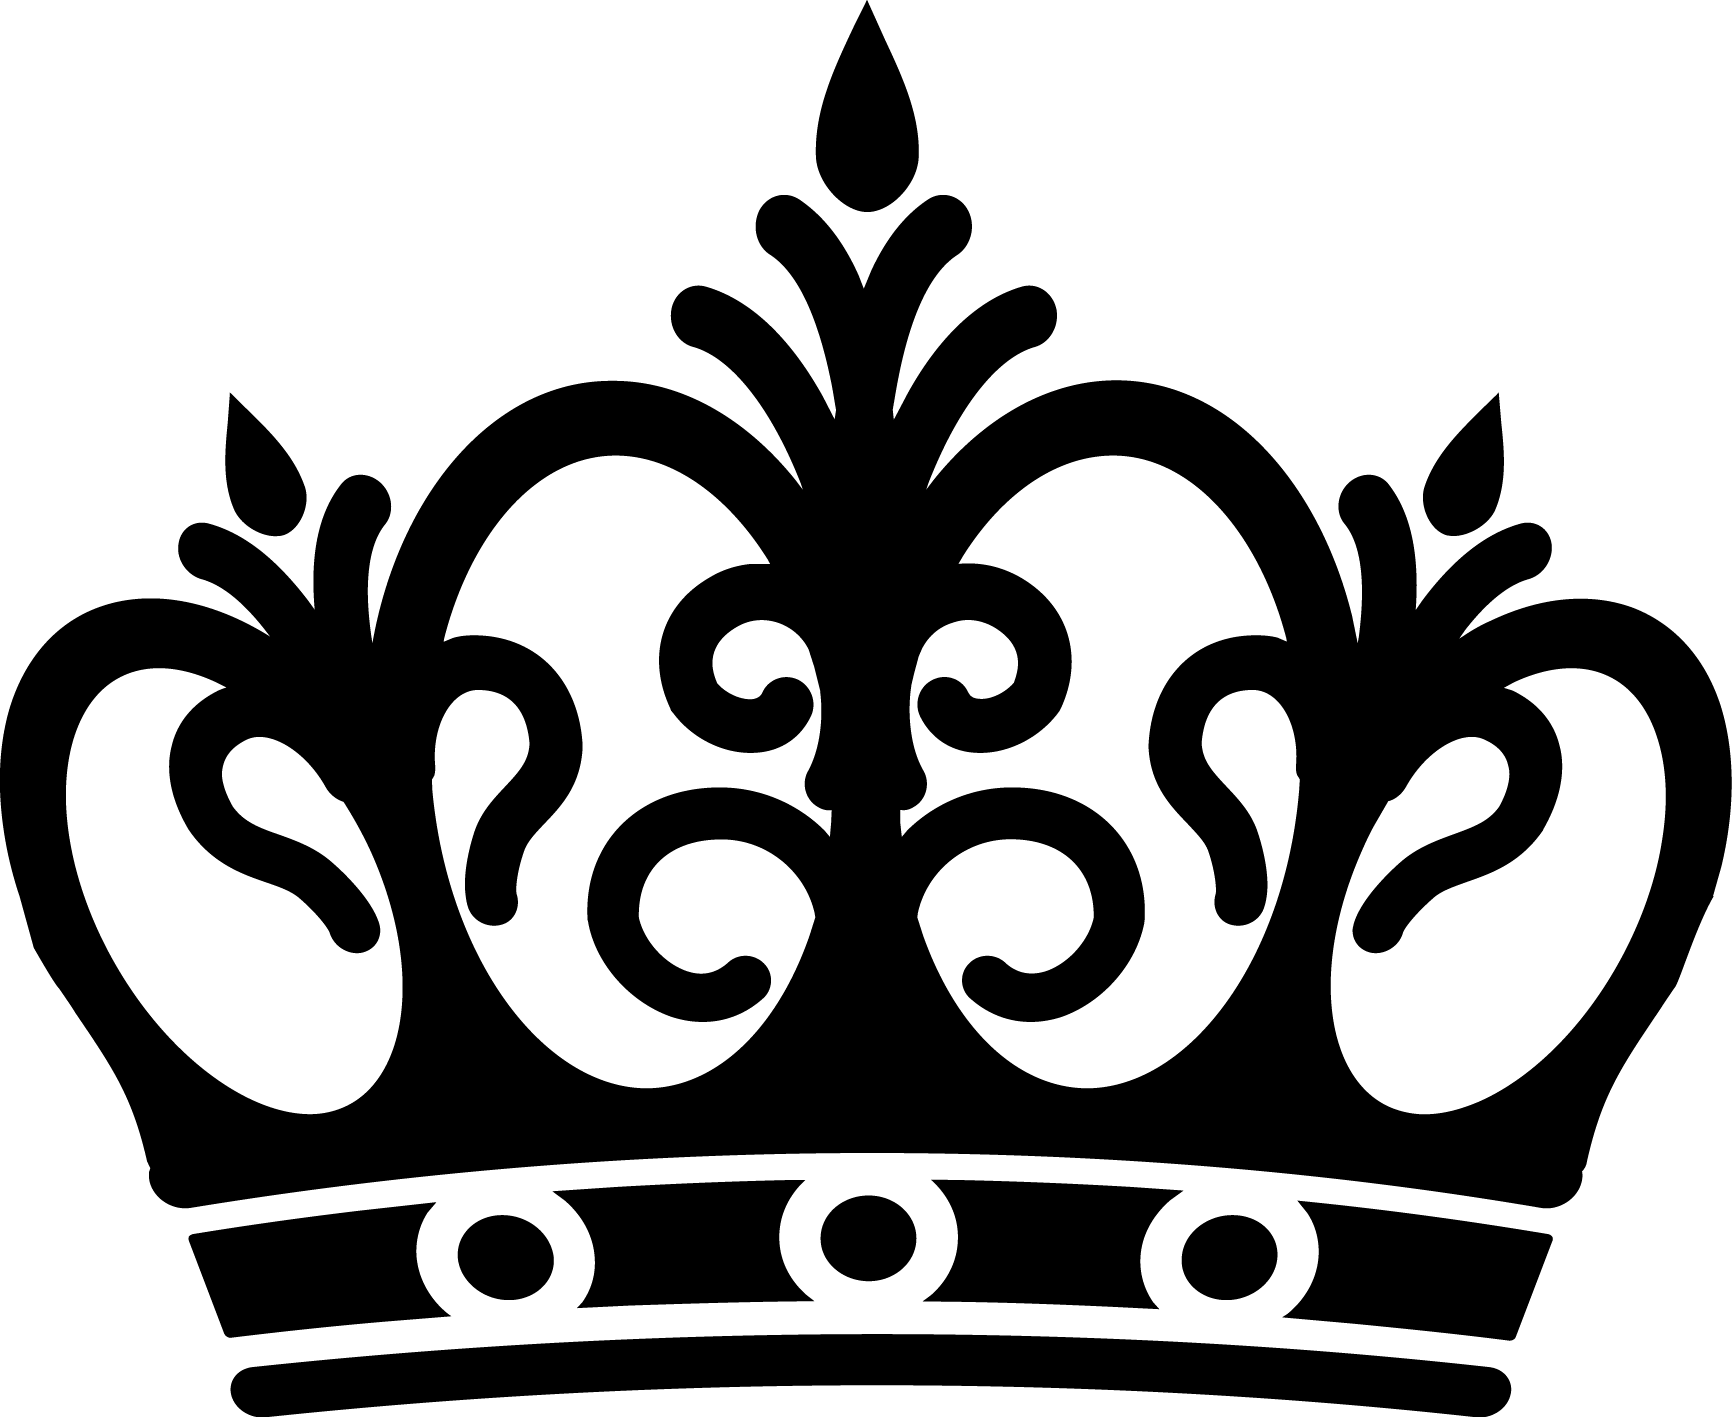 Kings crown clipart free